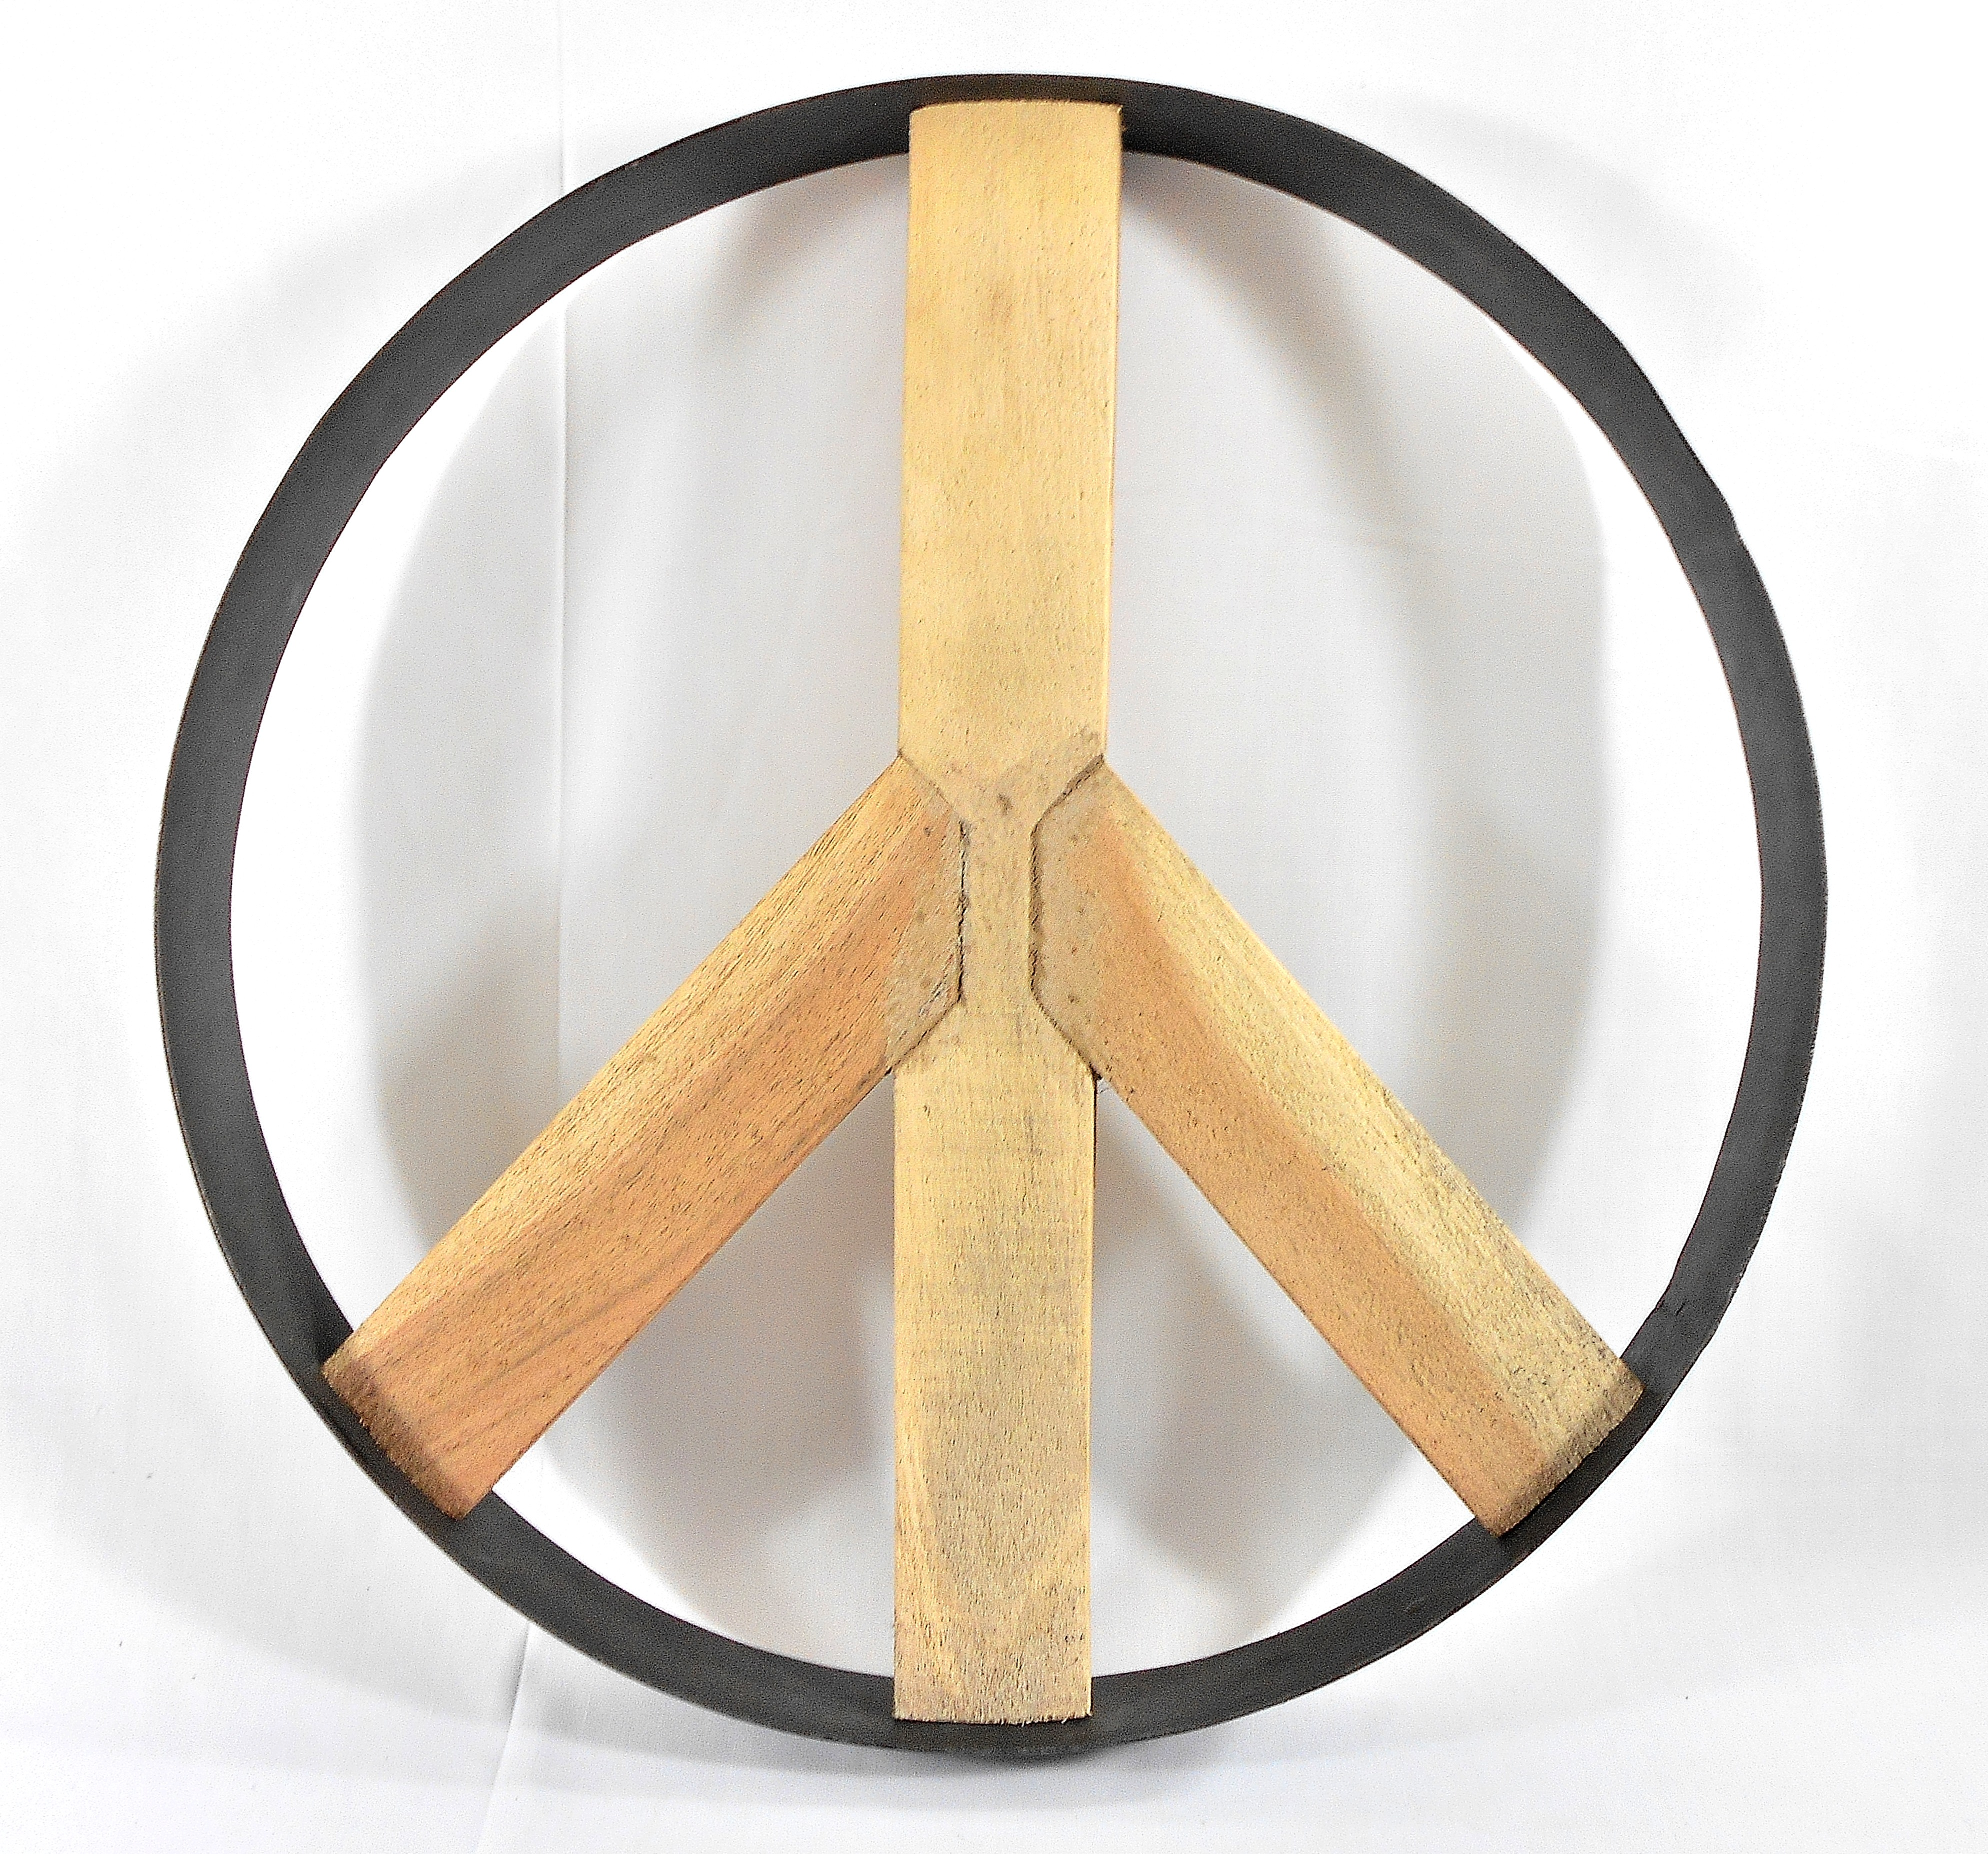 Iron and Wood Peace Sign Wall Art - Image 6 of 6  sc 1 st  Chairish & Iron and Wood Peace Sign Wall Art | Chairish